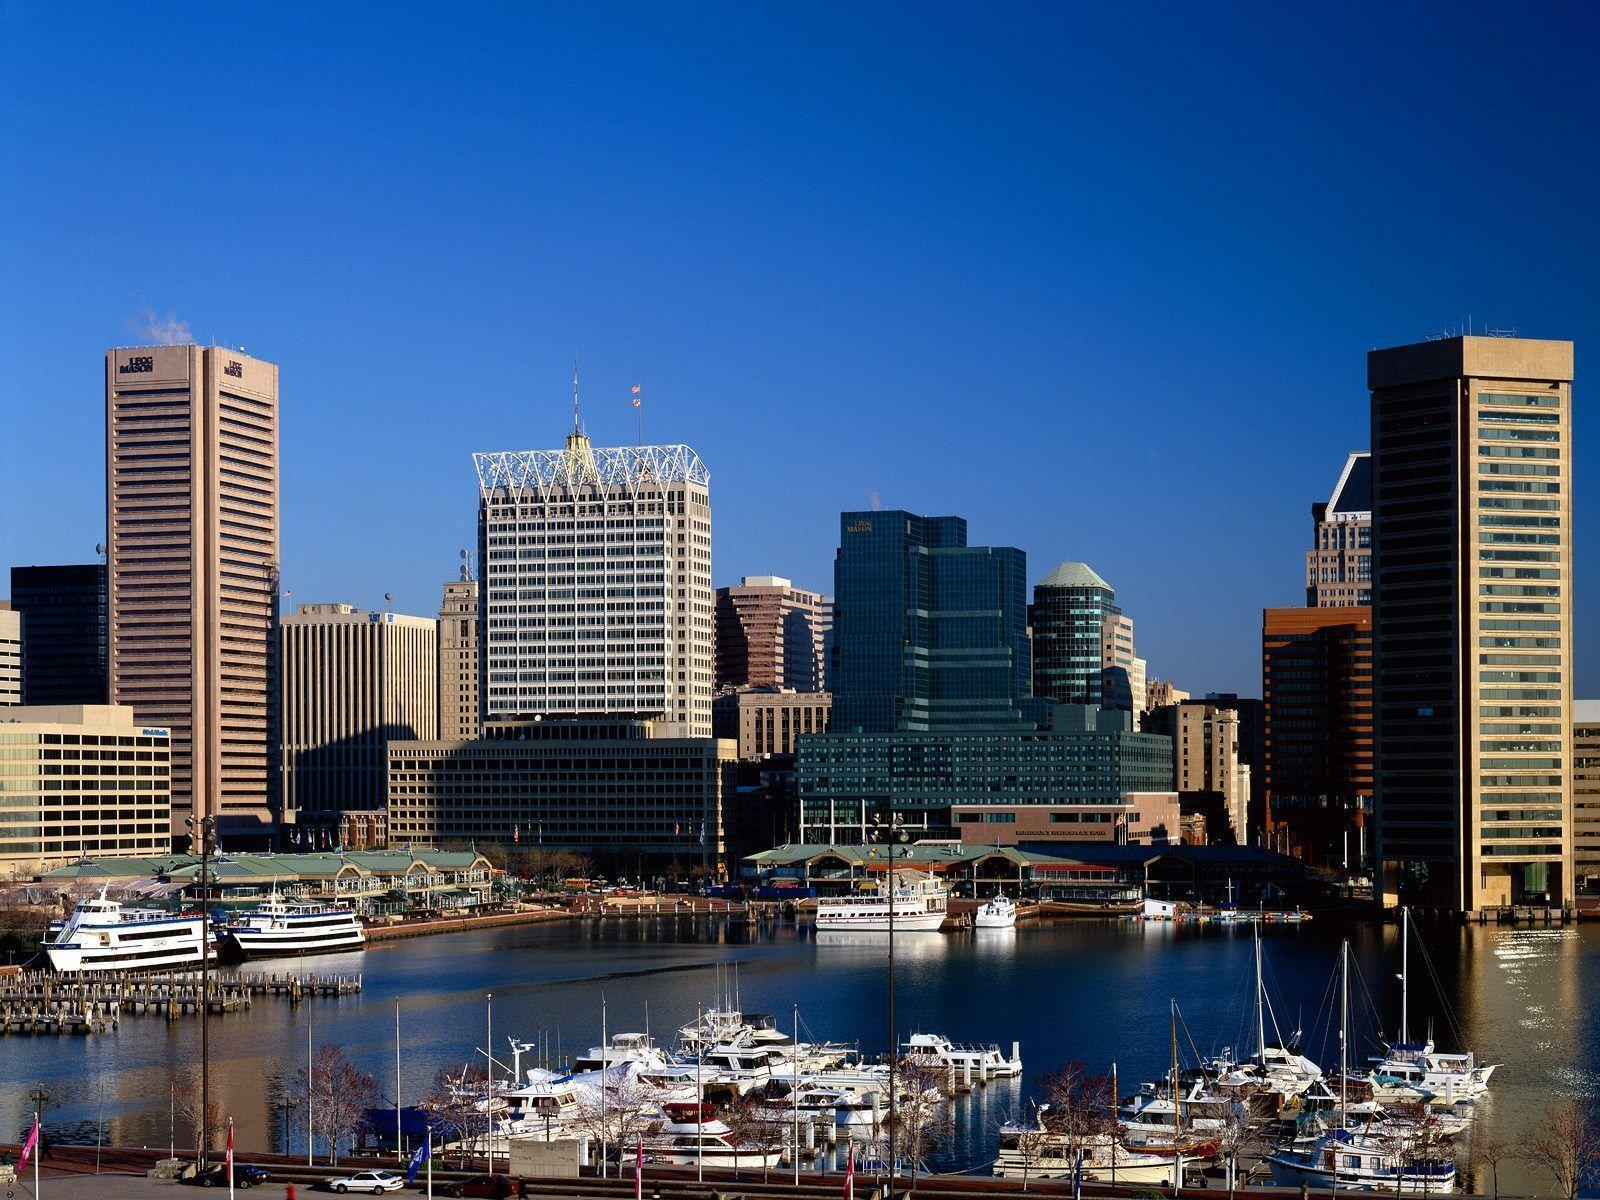 Baltimore MD Wallpaper - WallpaperSafari